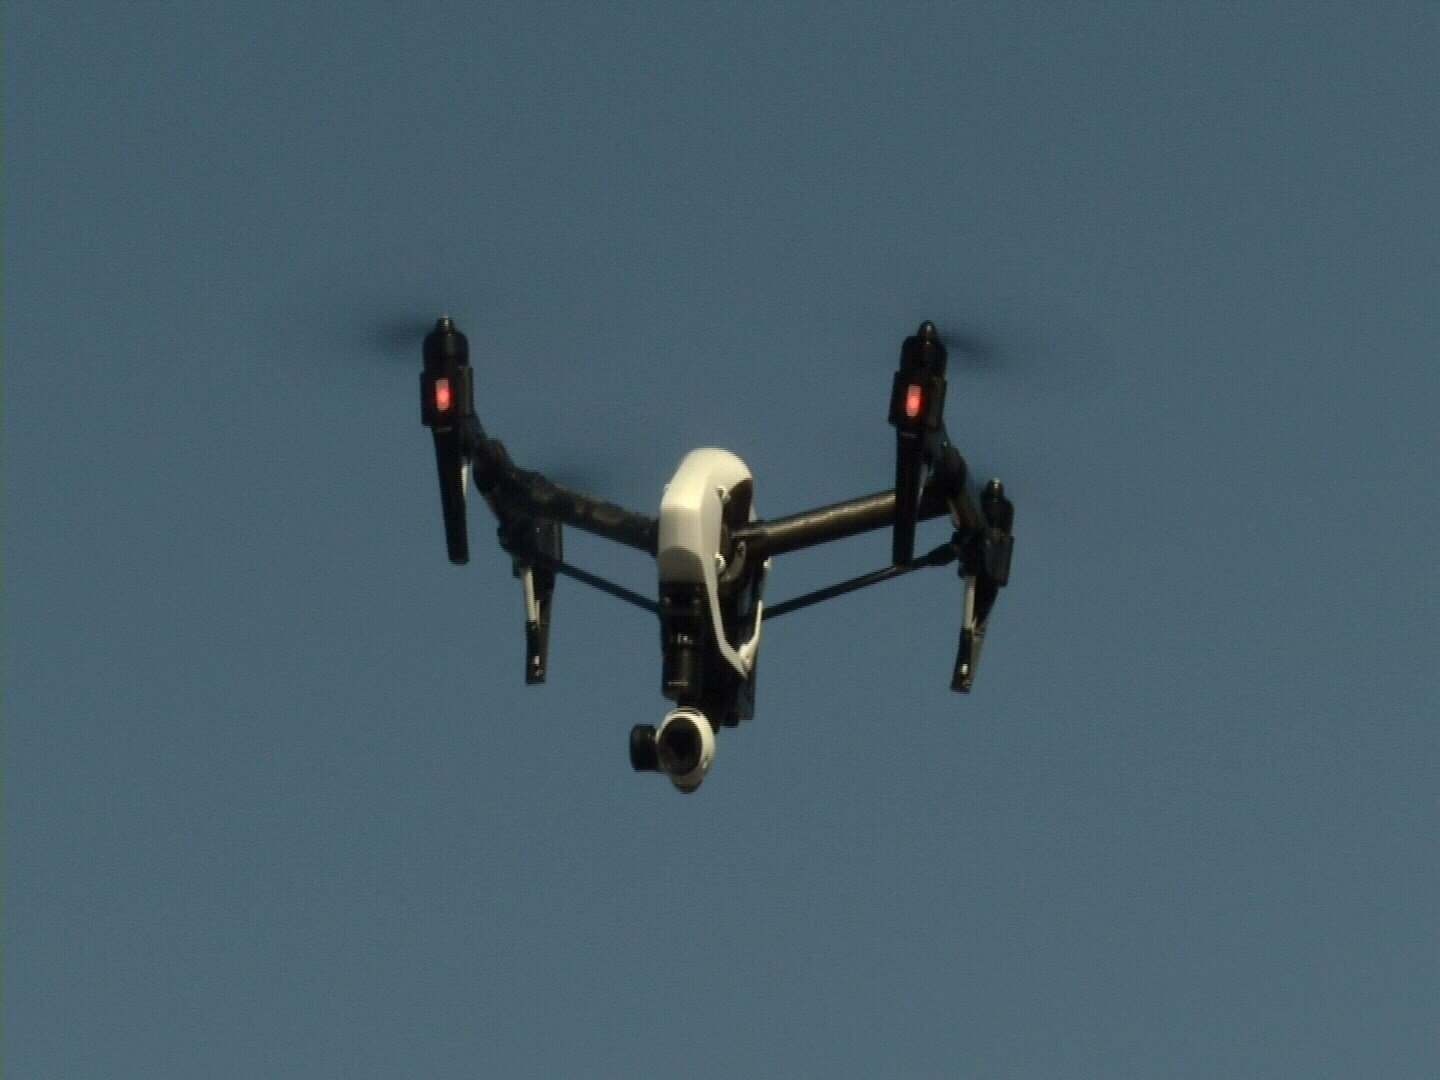 Elected leaders in El Paso County are discussing the idea of creating a drone park to give unmanned aircraft pilots a public space to fly.